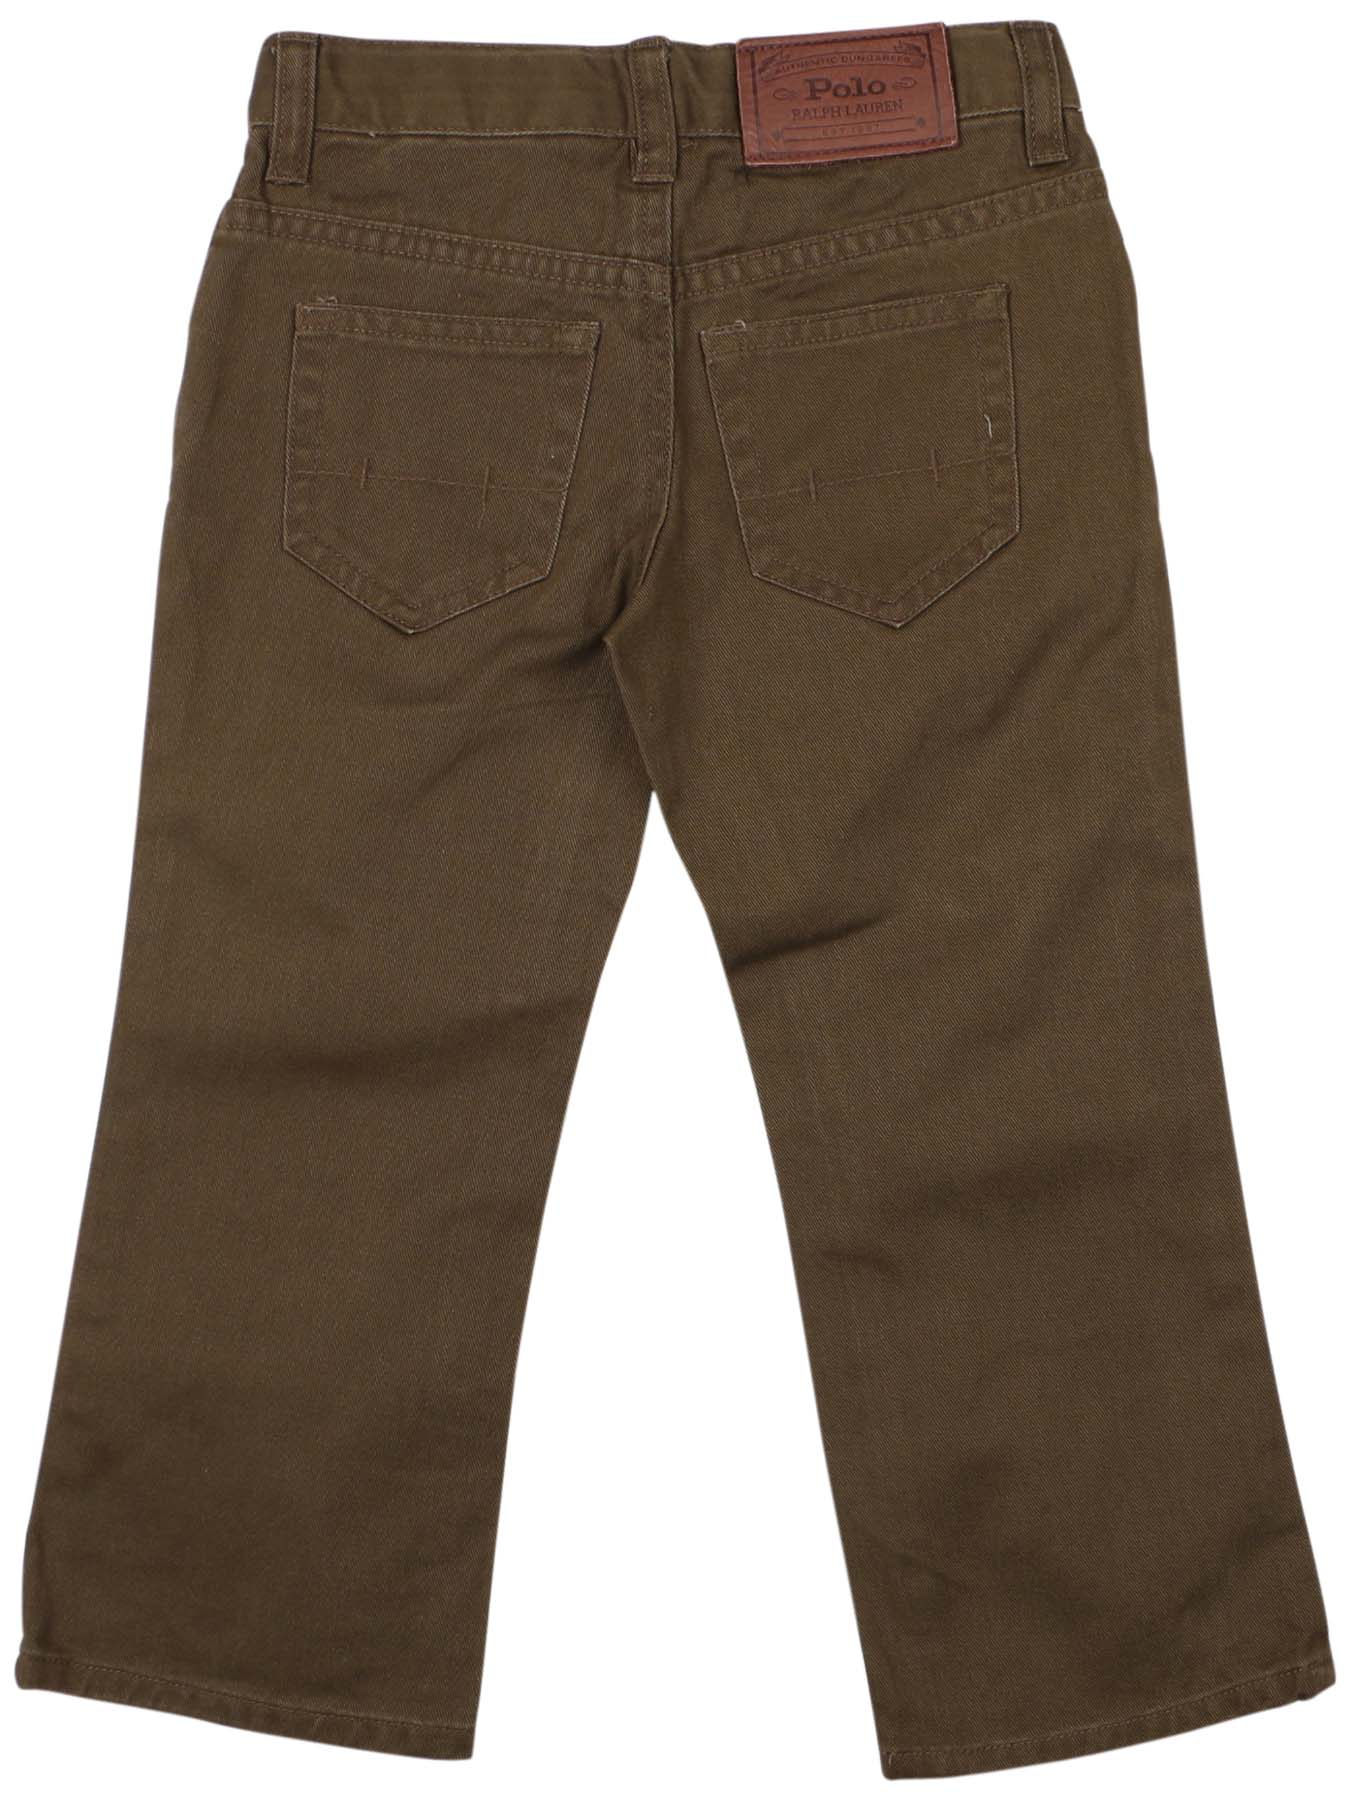 Polo ralph lauren toddler boys 39 2t 4t 5 pocket pants ebay for Ralph lauren kids